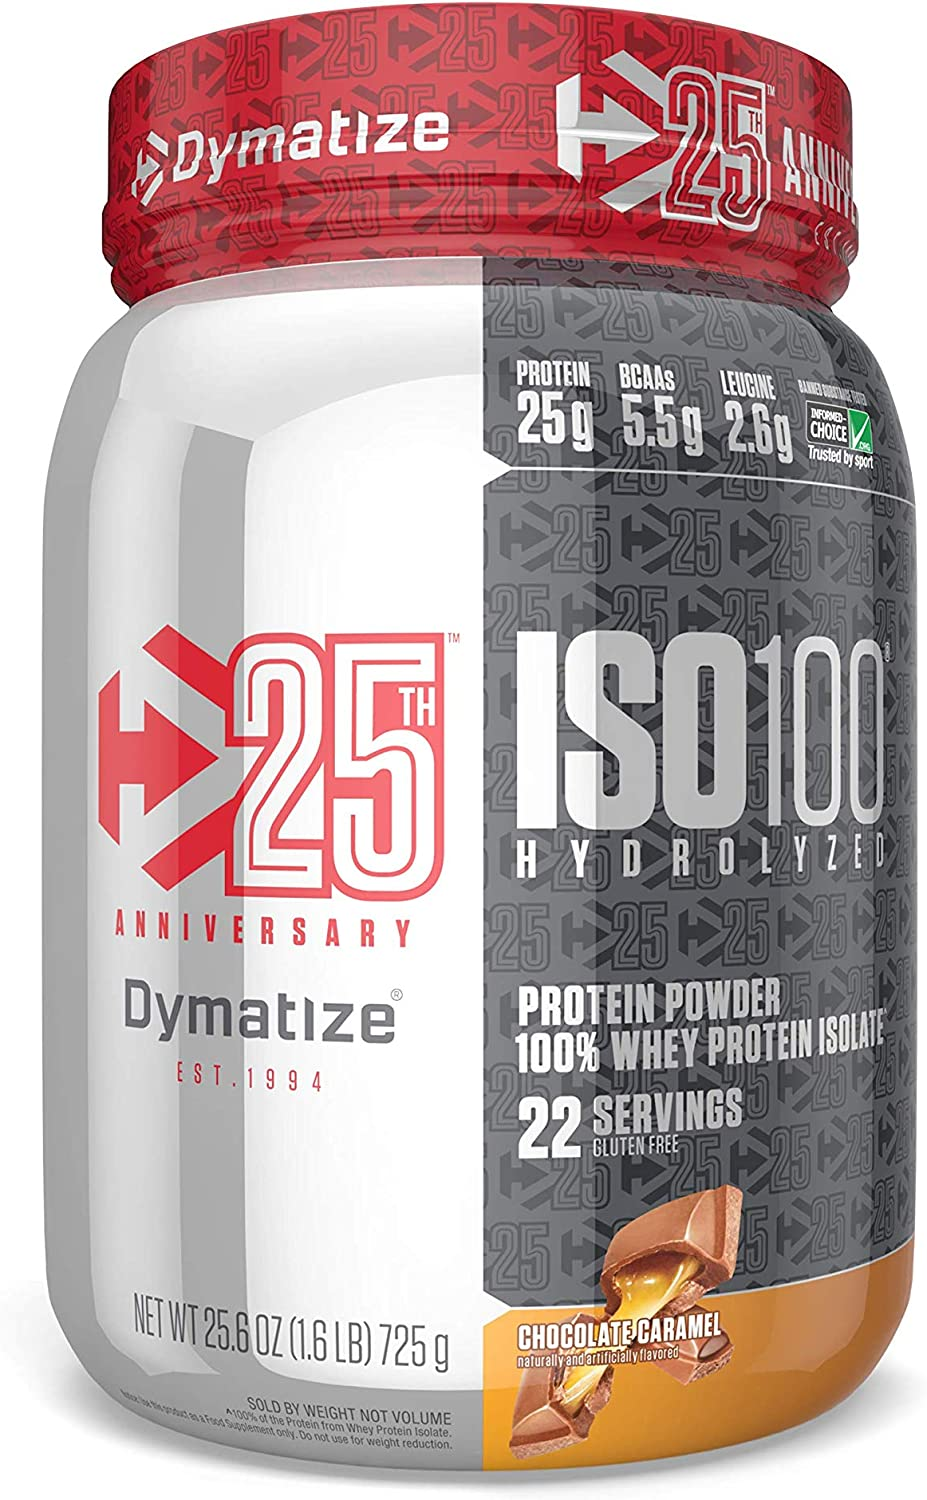 Limited Time Offer Dymatize Iso 100 Whey Protein Powder with 25g of Hydrolyzed 100 Whey Isolate, Gluten Free, Fast Digesting, Chocolate Caramel, 1.6 Lb